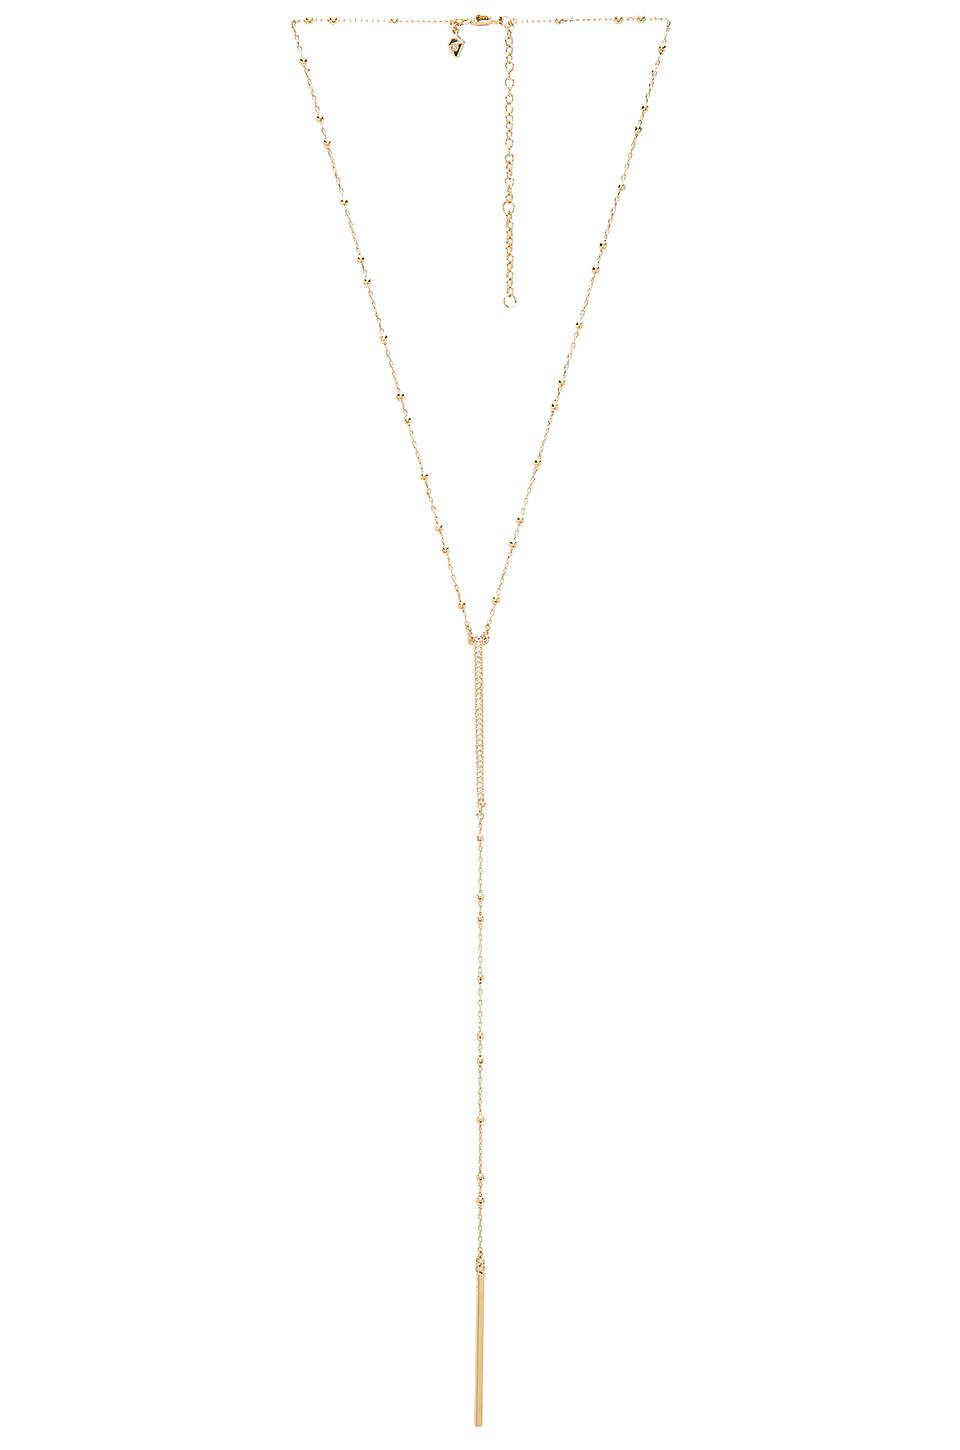 Rebecca Minkoff Beaded Pave Bar Necklace in Metallic Gold bENawIh